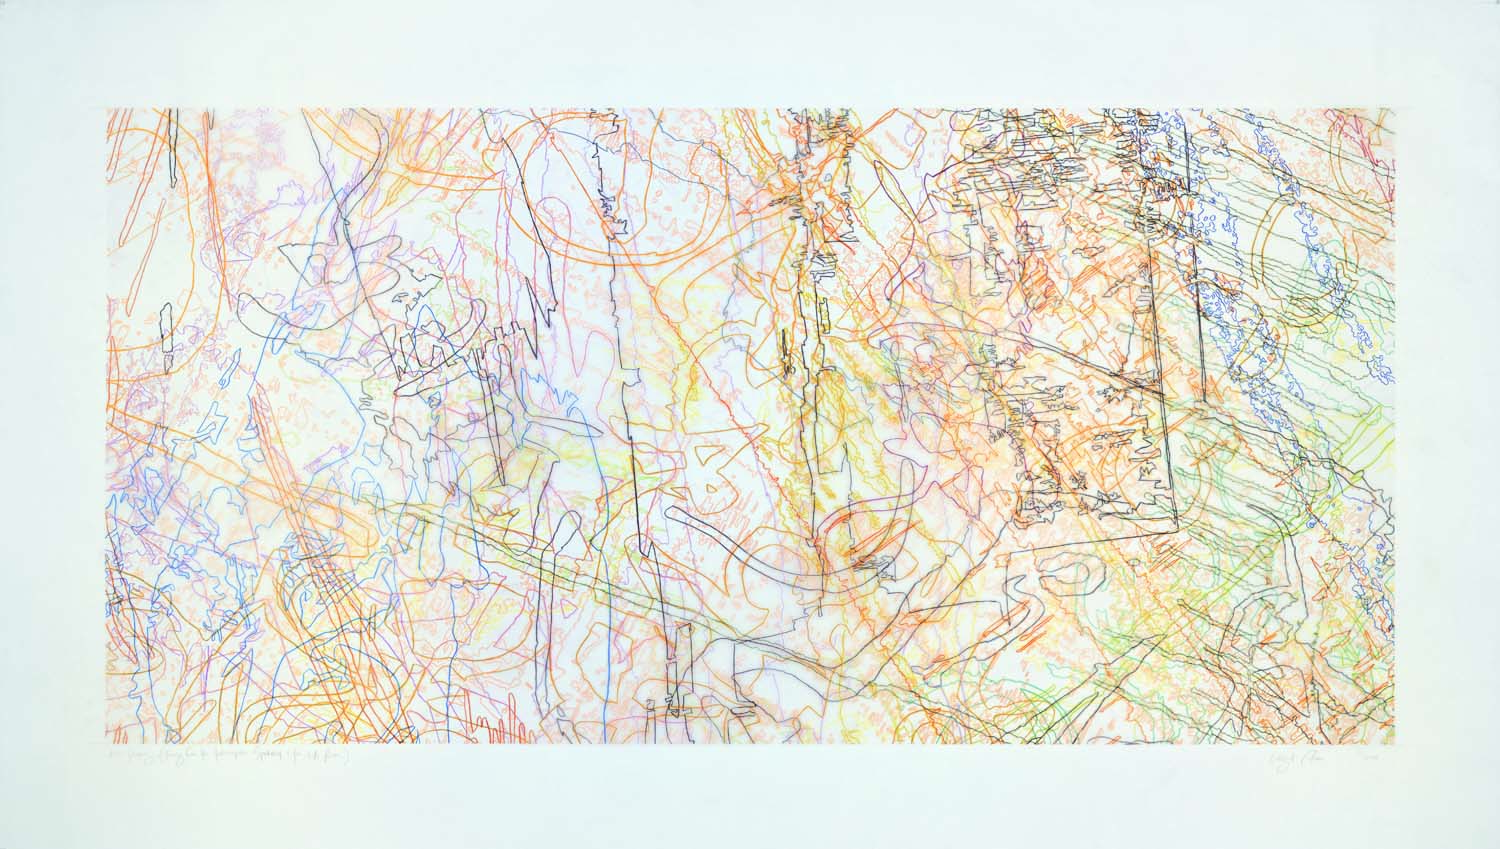 #268 Drawing (Tracings from the Indianapolis Motor Speedway and the L.A. River)